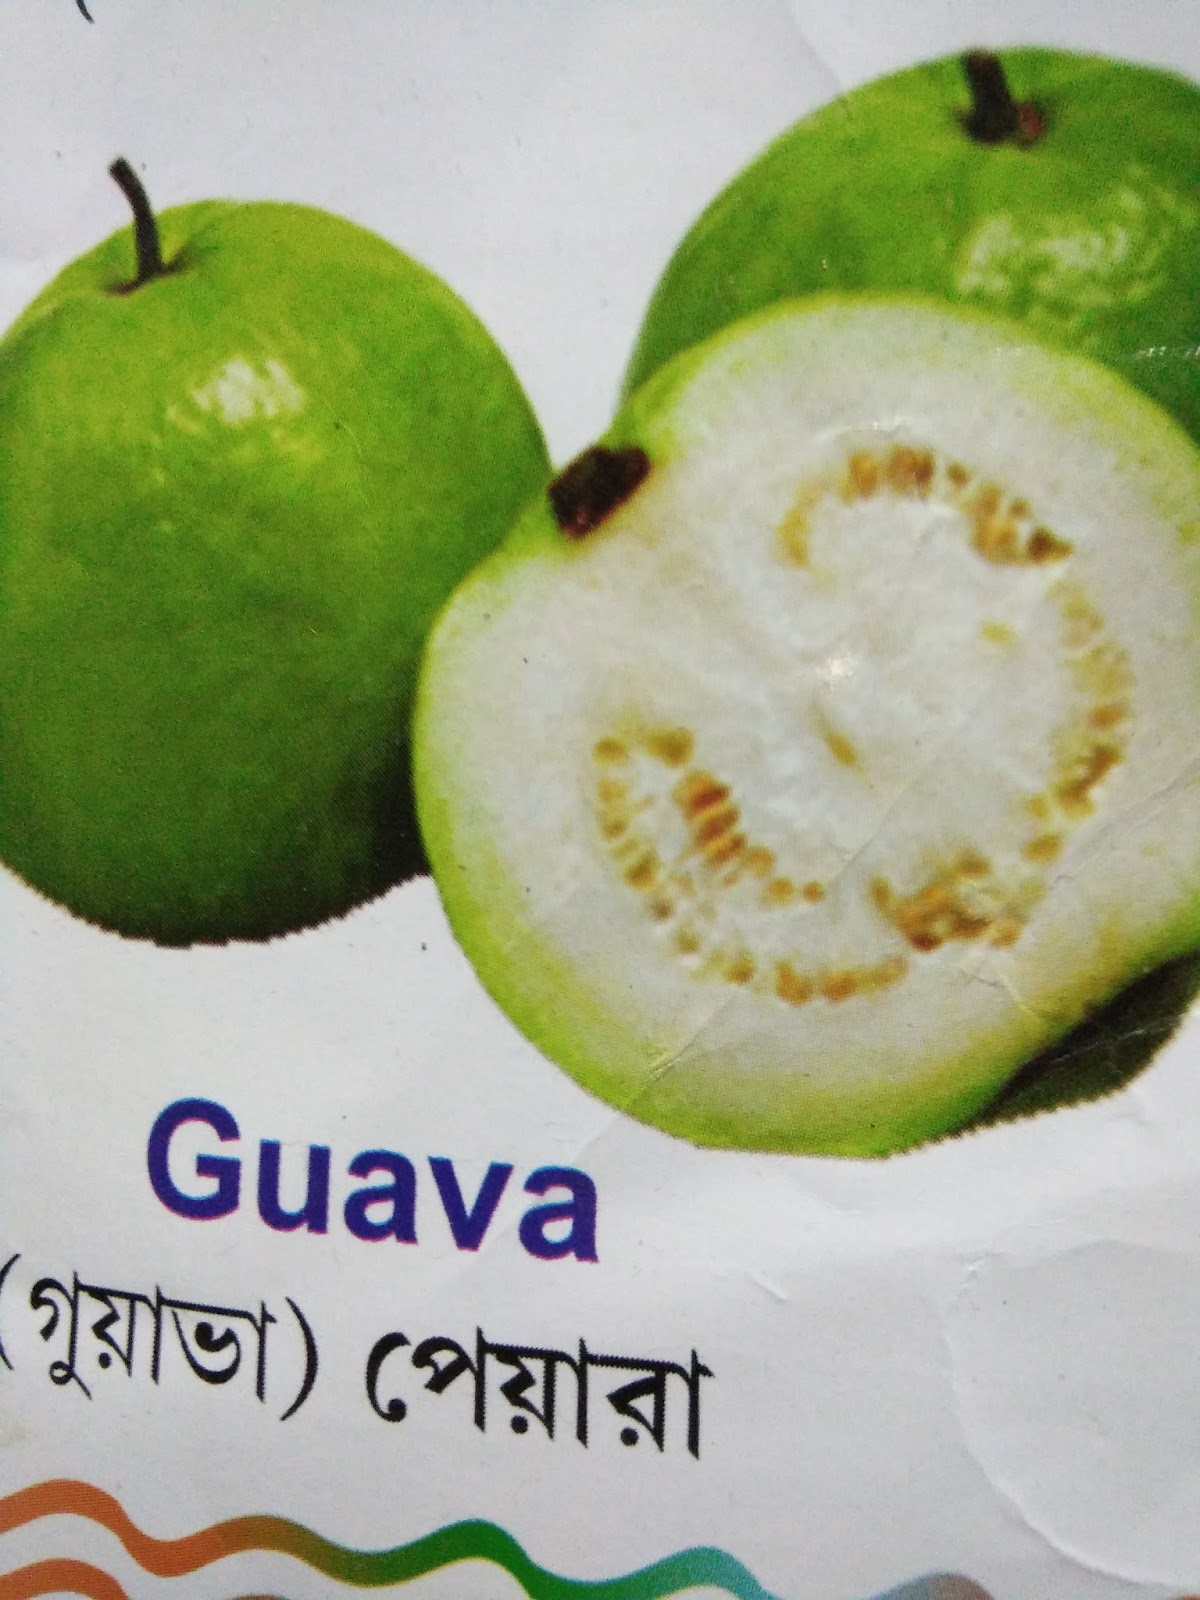 review of related literature about guava leaves Chapter 2: review of related literature chapter 3: methodology materials: beaker molder naoh (sodium hydroxide) (60 grams) (150 ml) solution gas stove guava leaves the procedure: prepare the stove to be used boil it for 10 minutes (low heat) separate the skin from the extract put it in a clean container, let it cool and then set aside.